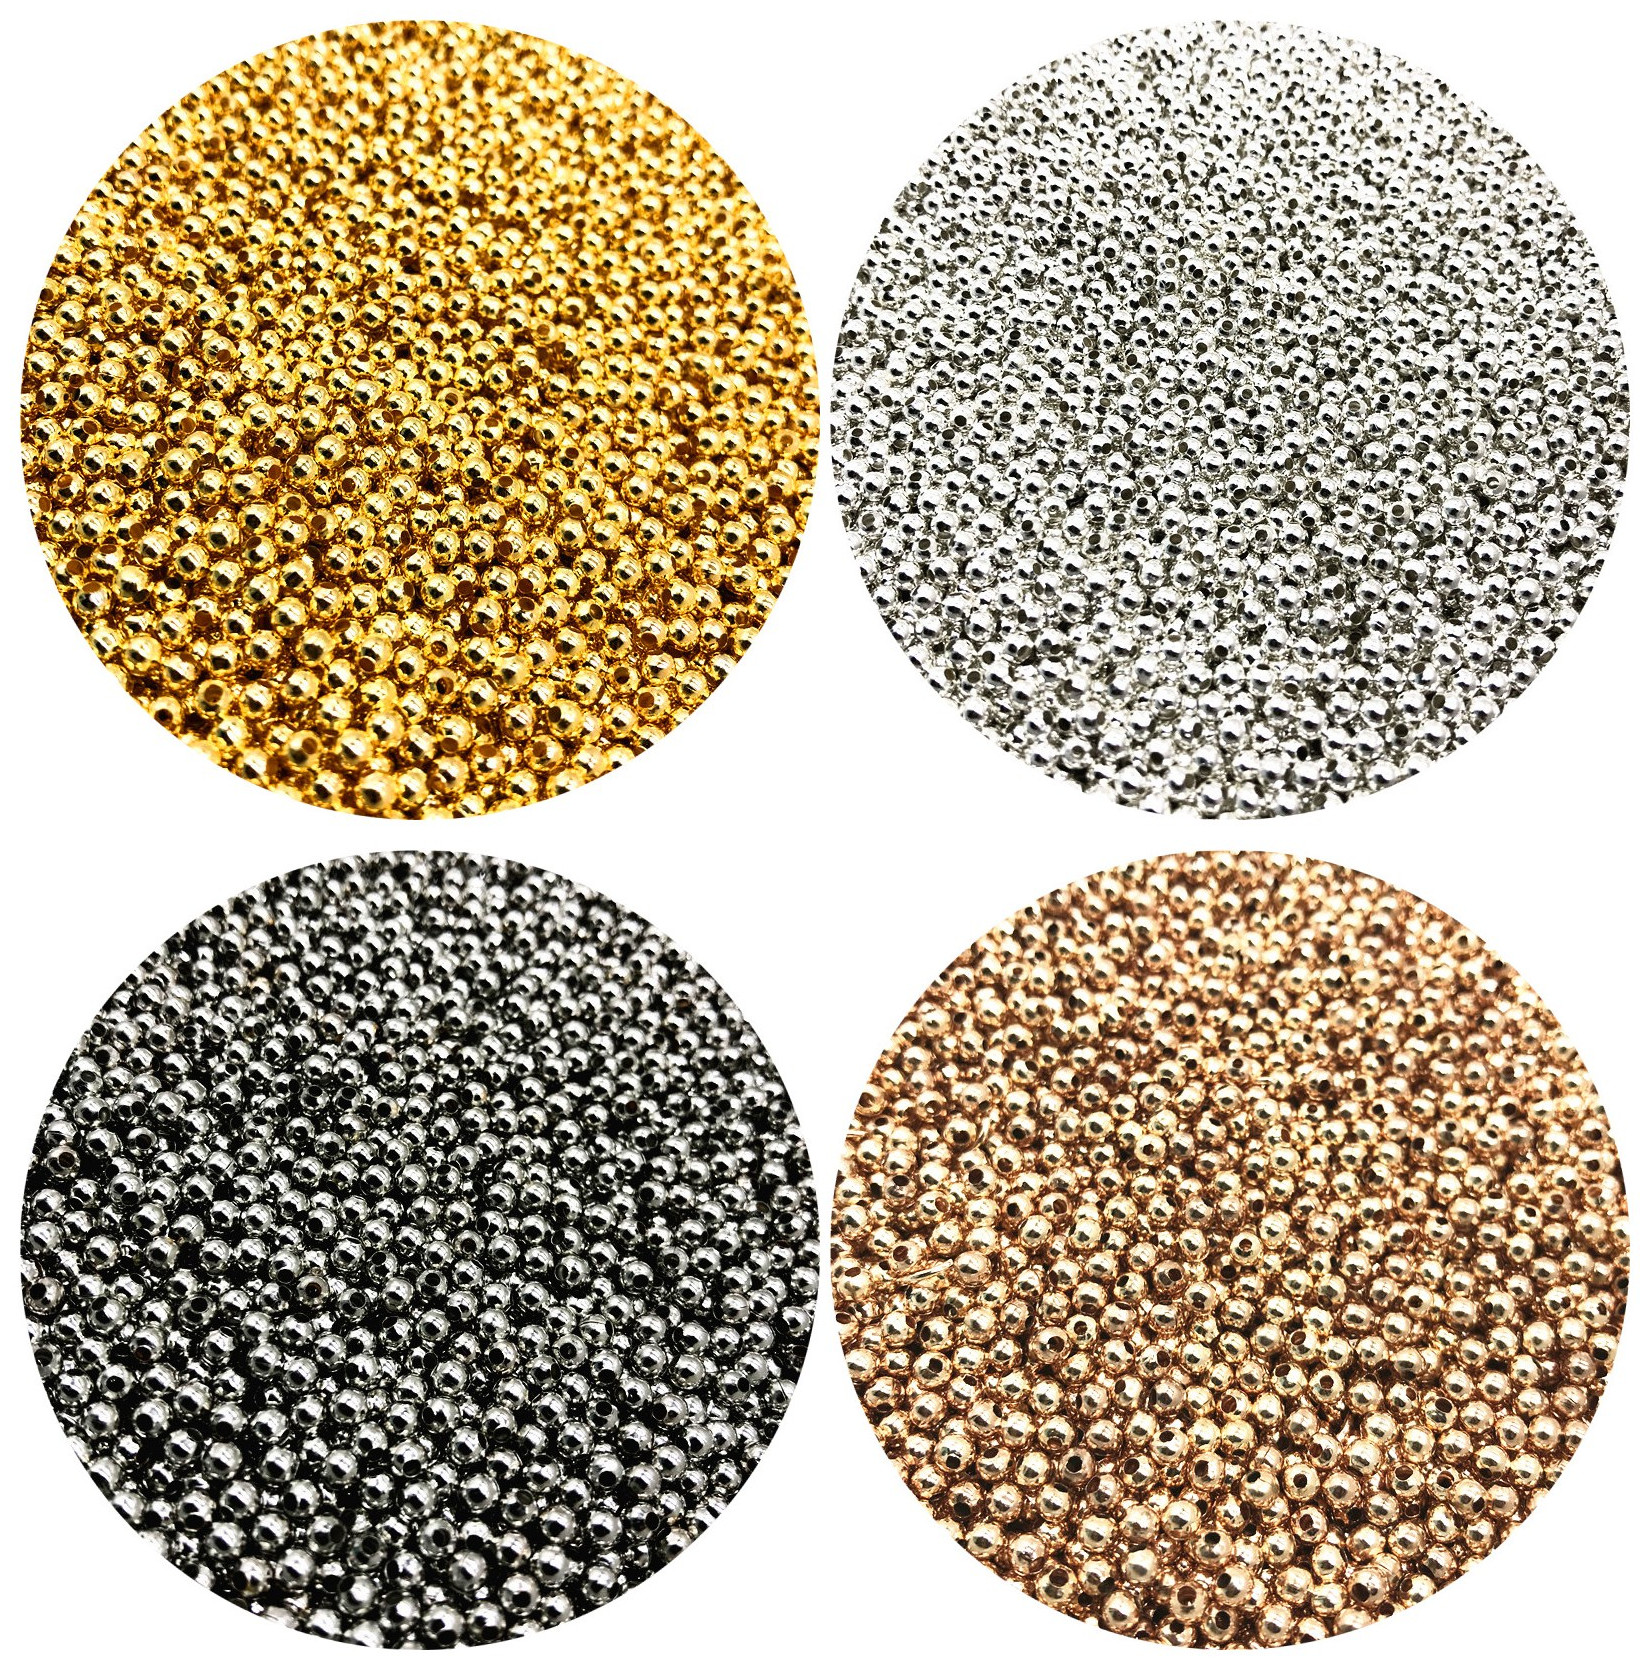 500/200/50pcs 2/4/6mm Gold/Gun black/Bronze Tone Metal Beads Smooth Ball Spacer Beads For Jewelry Making DIY Bracelet Necklace(China)